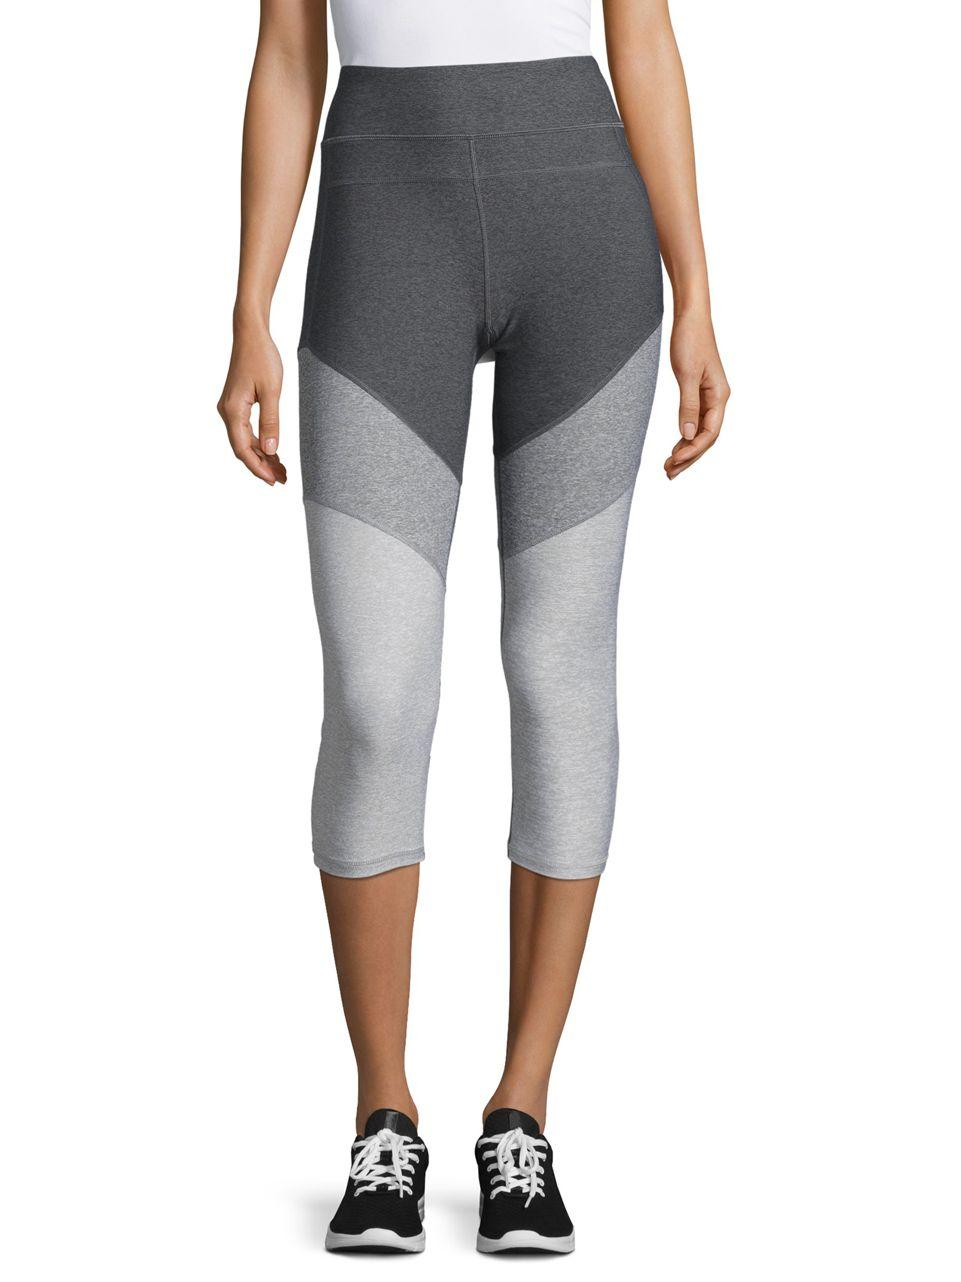 lyst calvin klein colorblocked cropped yoga leggings in gray. Black Bedroom Furniture Sets. Home Design Ideas